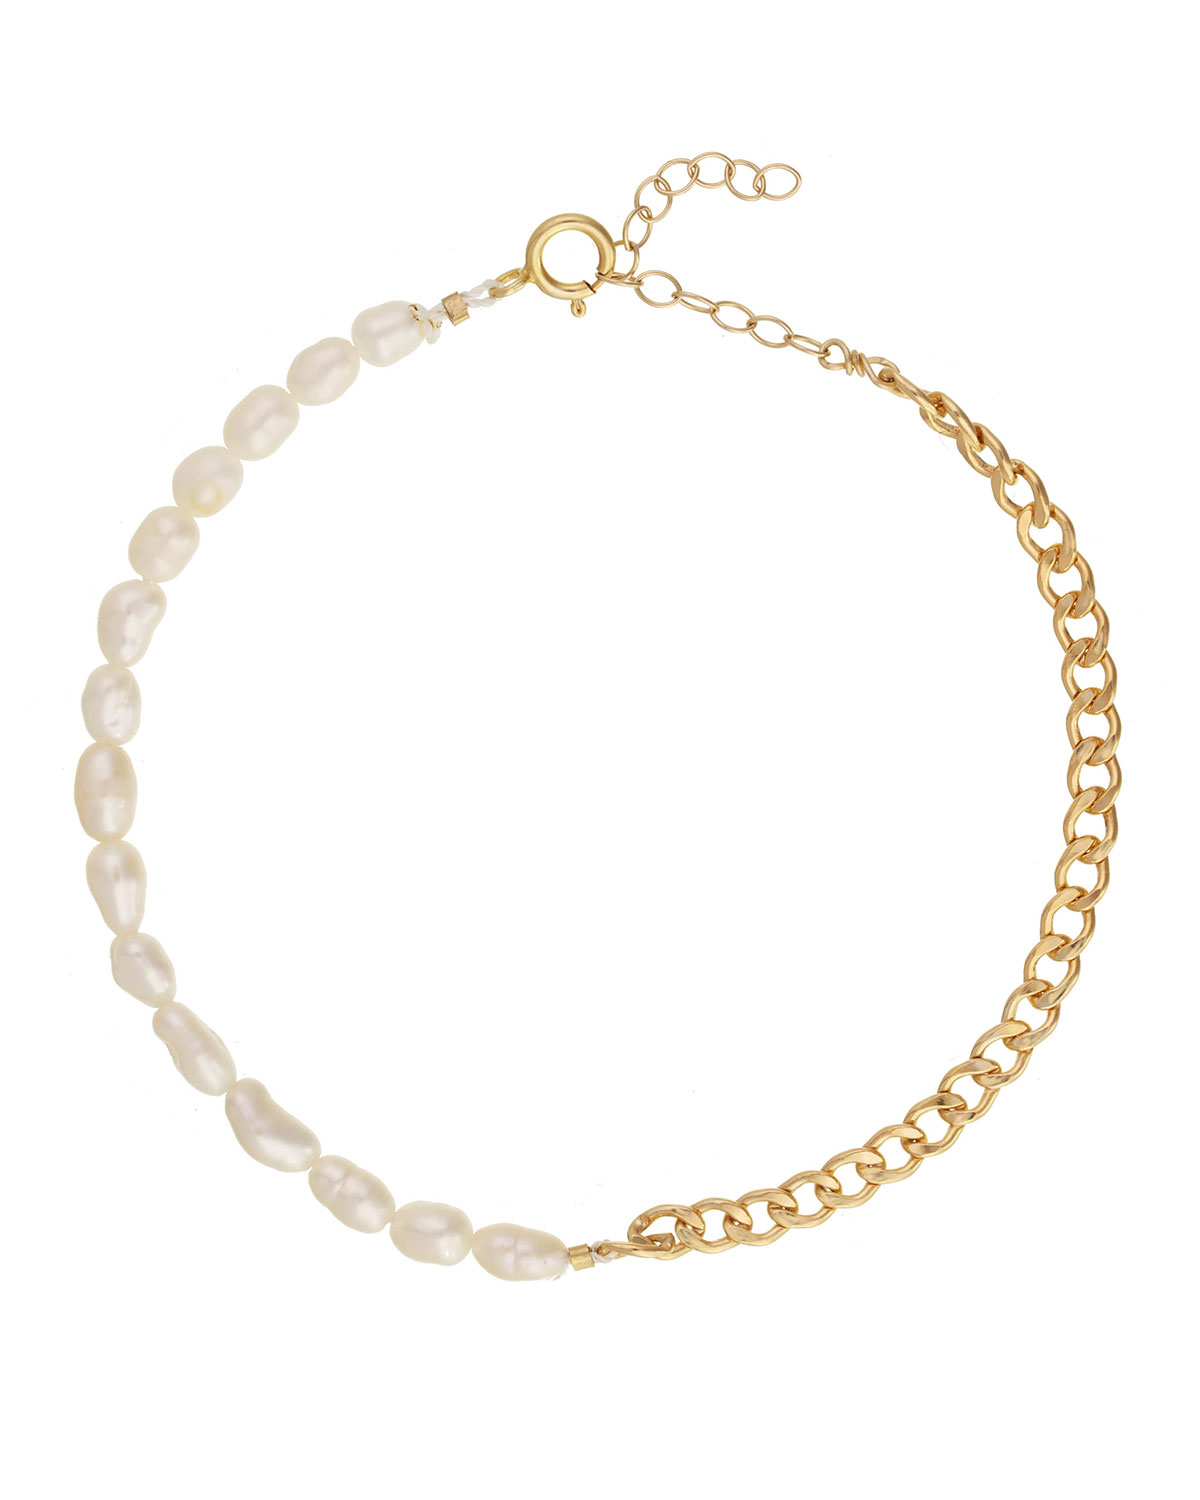 Arro Chain and Pearl Bracelet